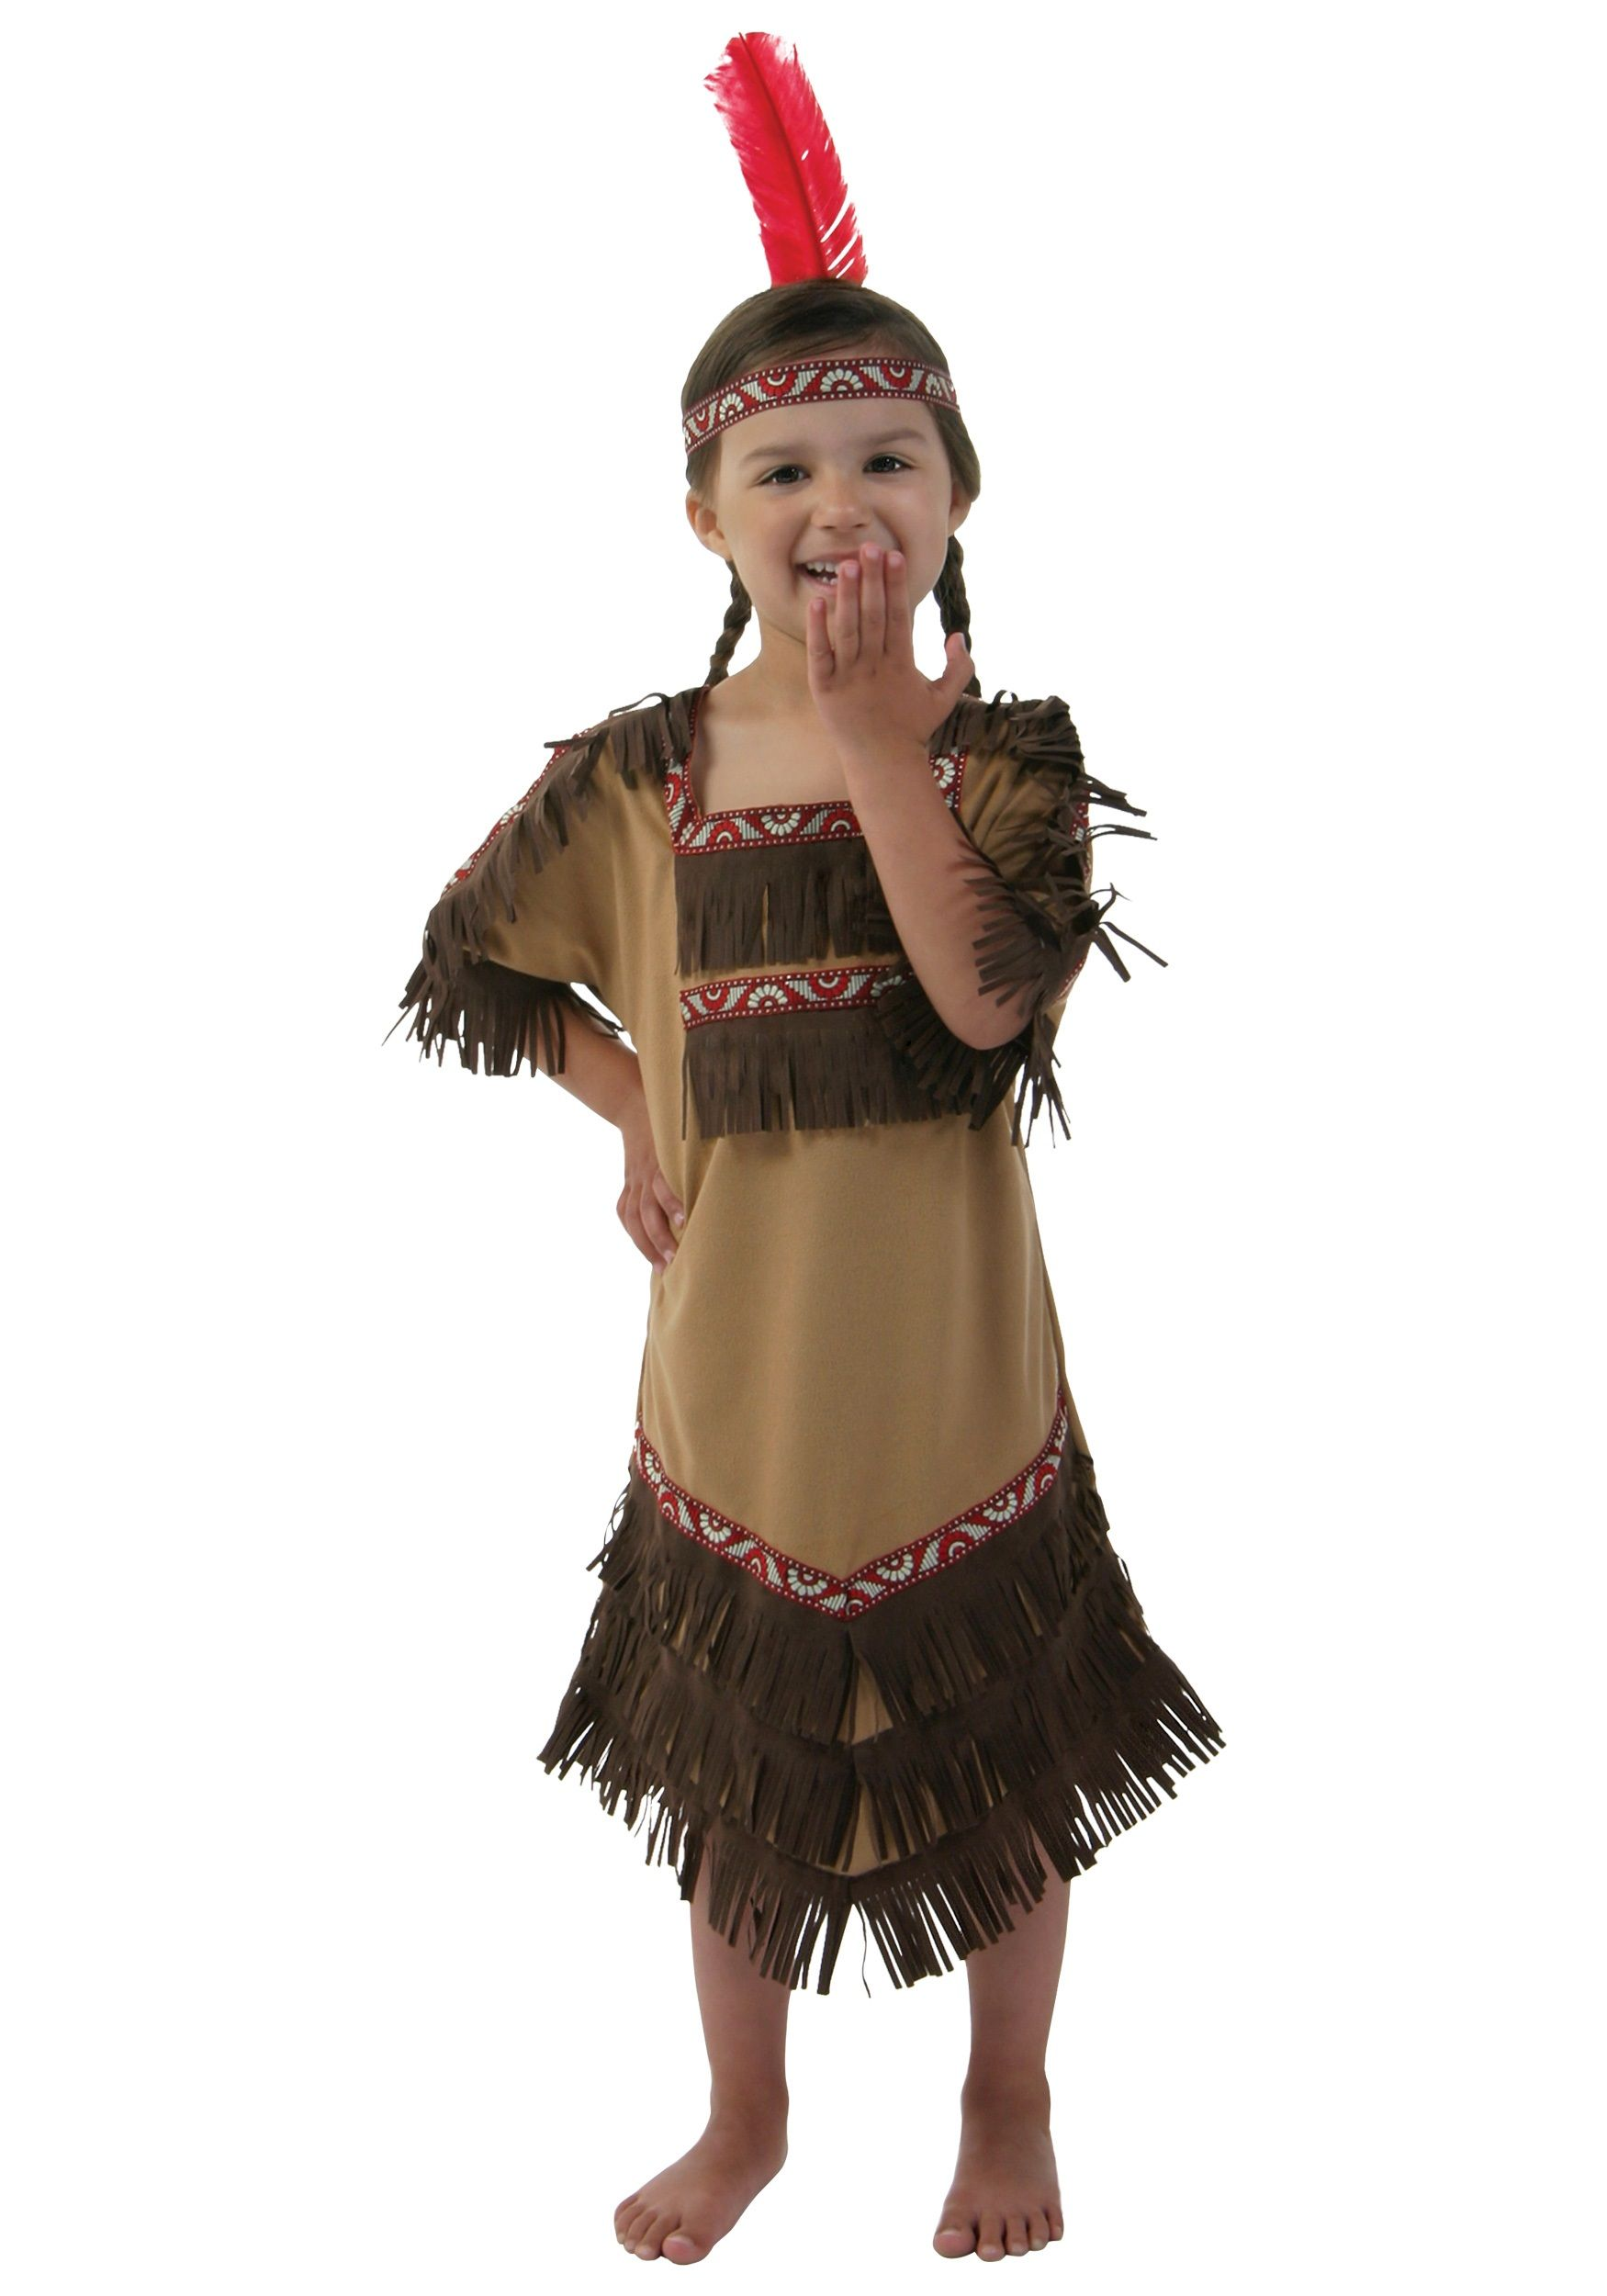 pocahontas halloween costume girls halloween costume ideas - Native American Costume Halloween